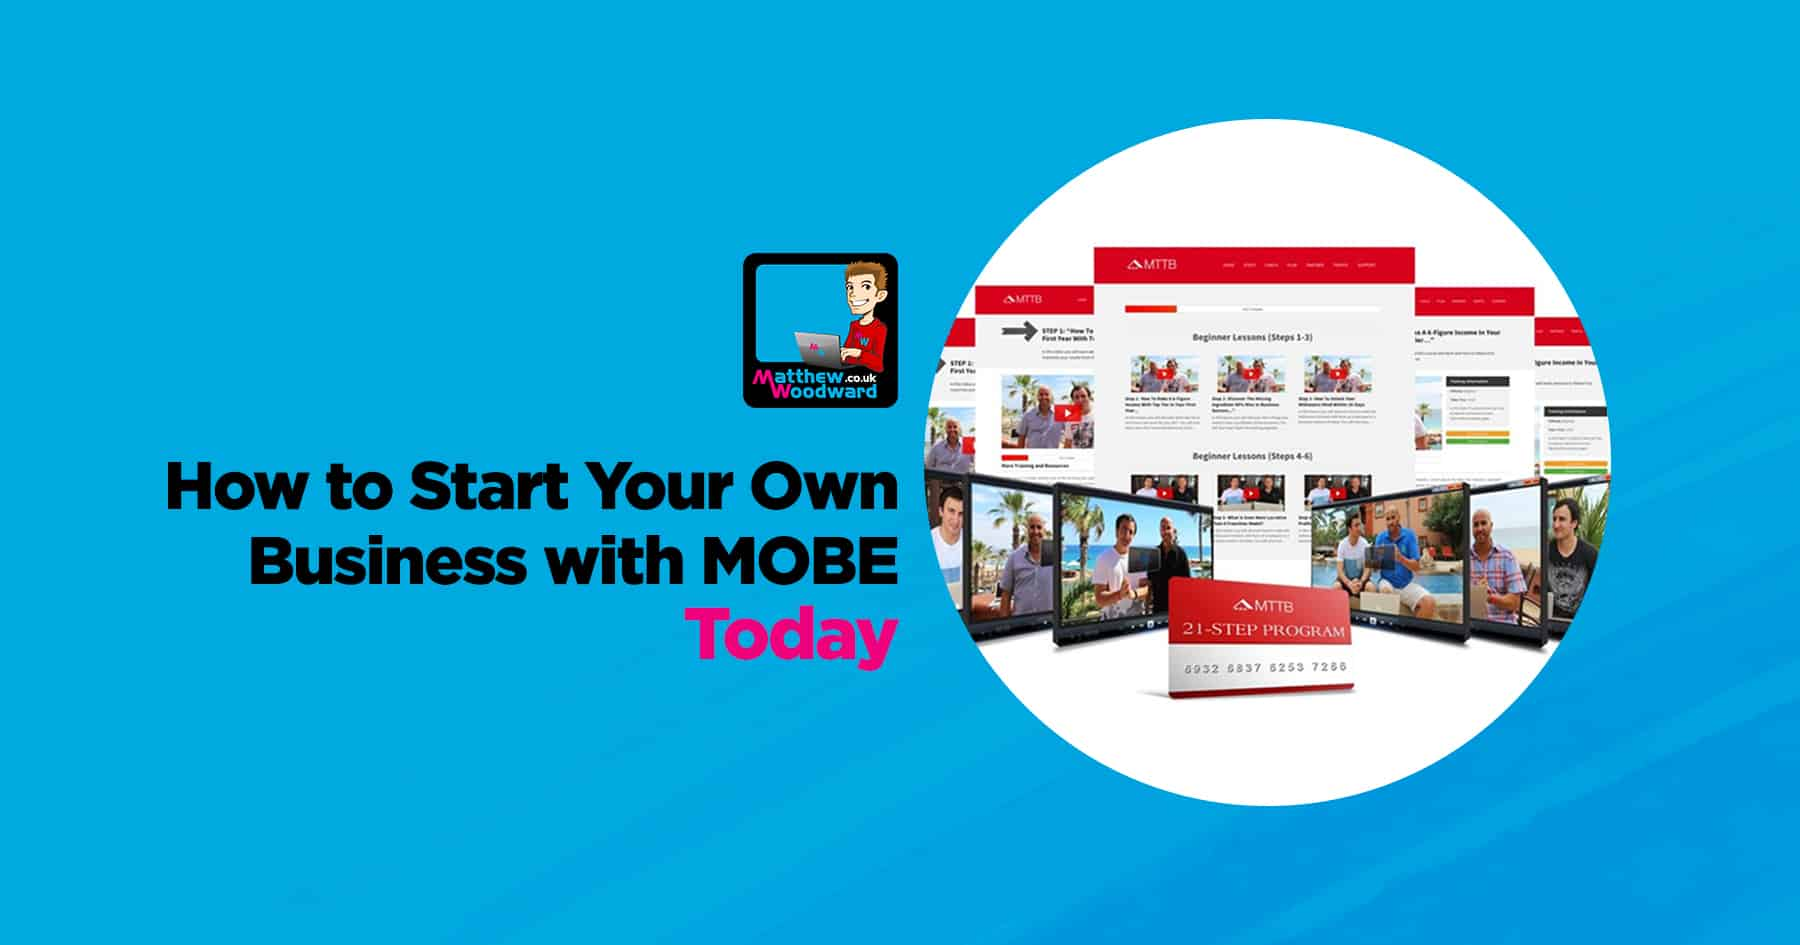 cdc22713272e How To Start Your Own Business With MOBE MTTB Today